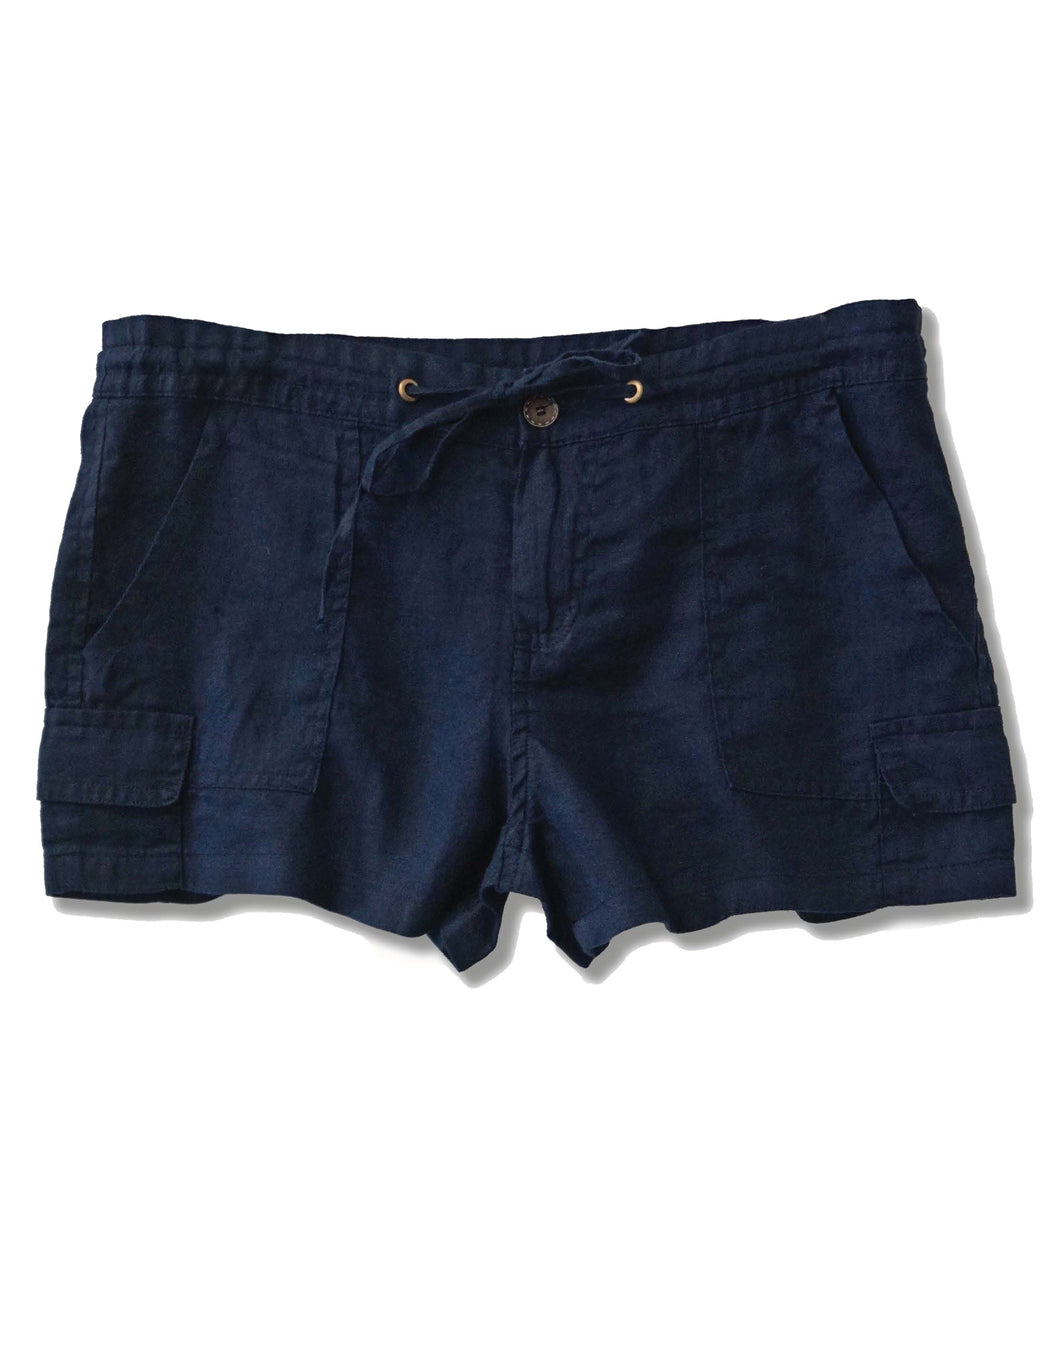 Linen Drawstring Cargo Shorts | Navy - 4our Dreamers